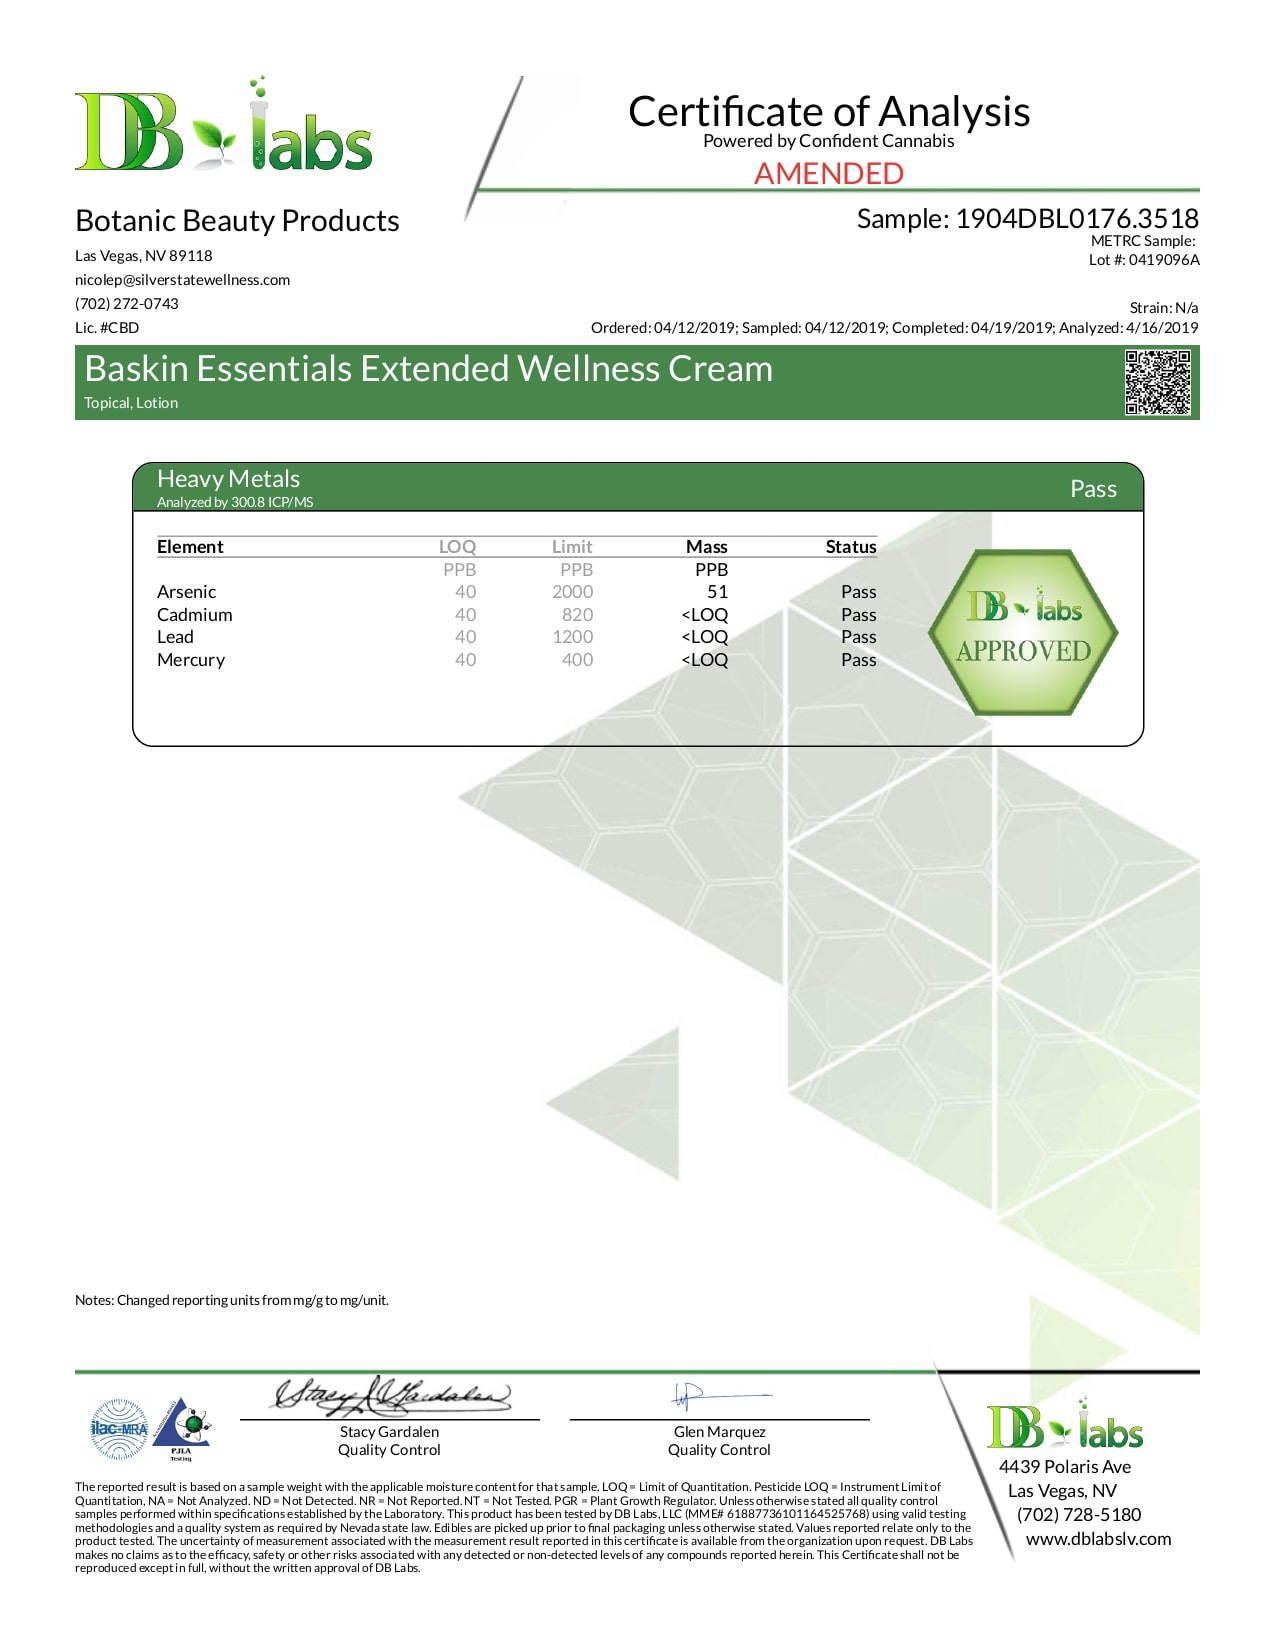 Baskin CBD Topical Body Wellness Cream Lab Report